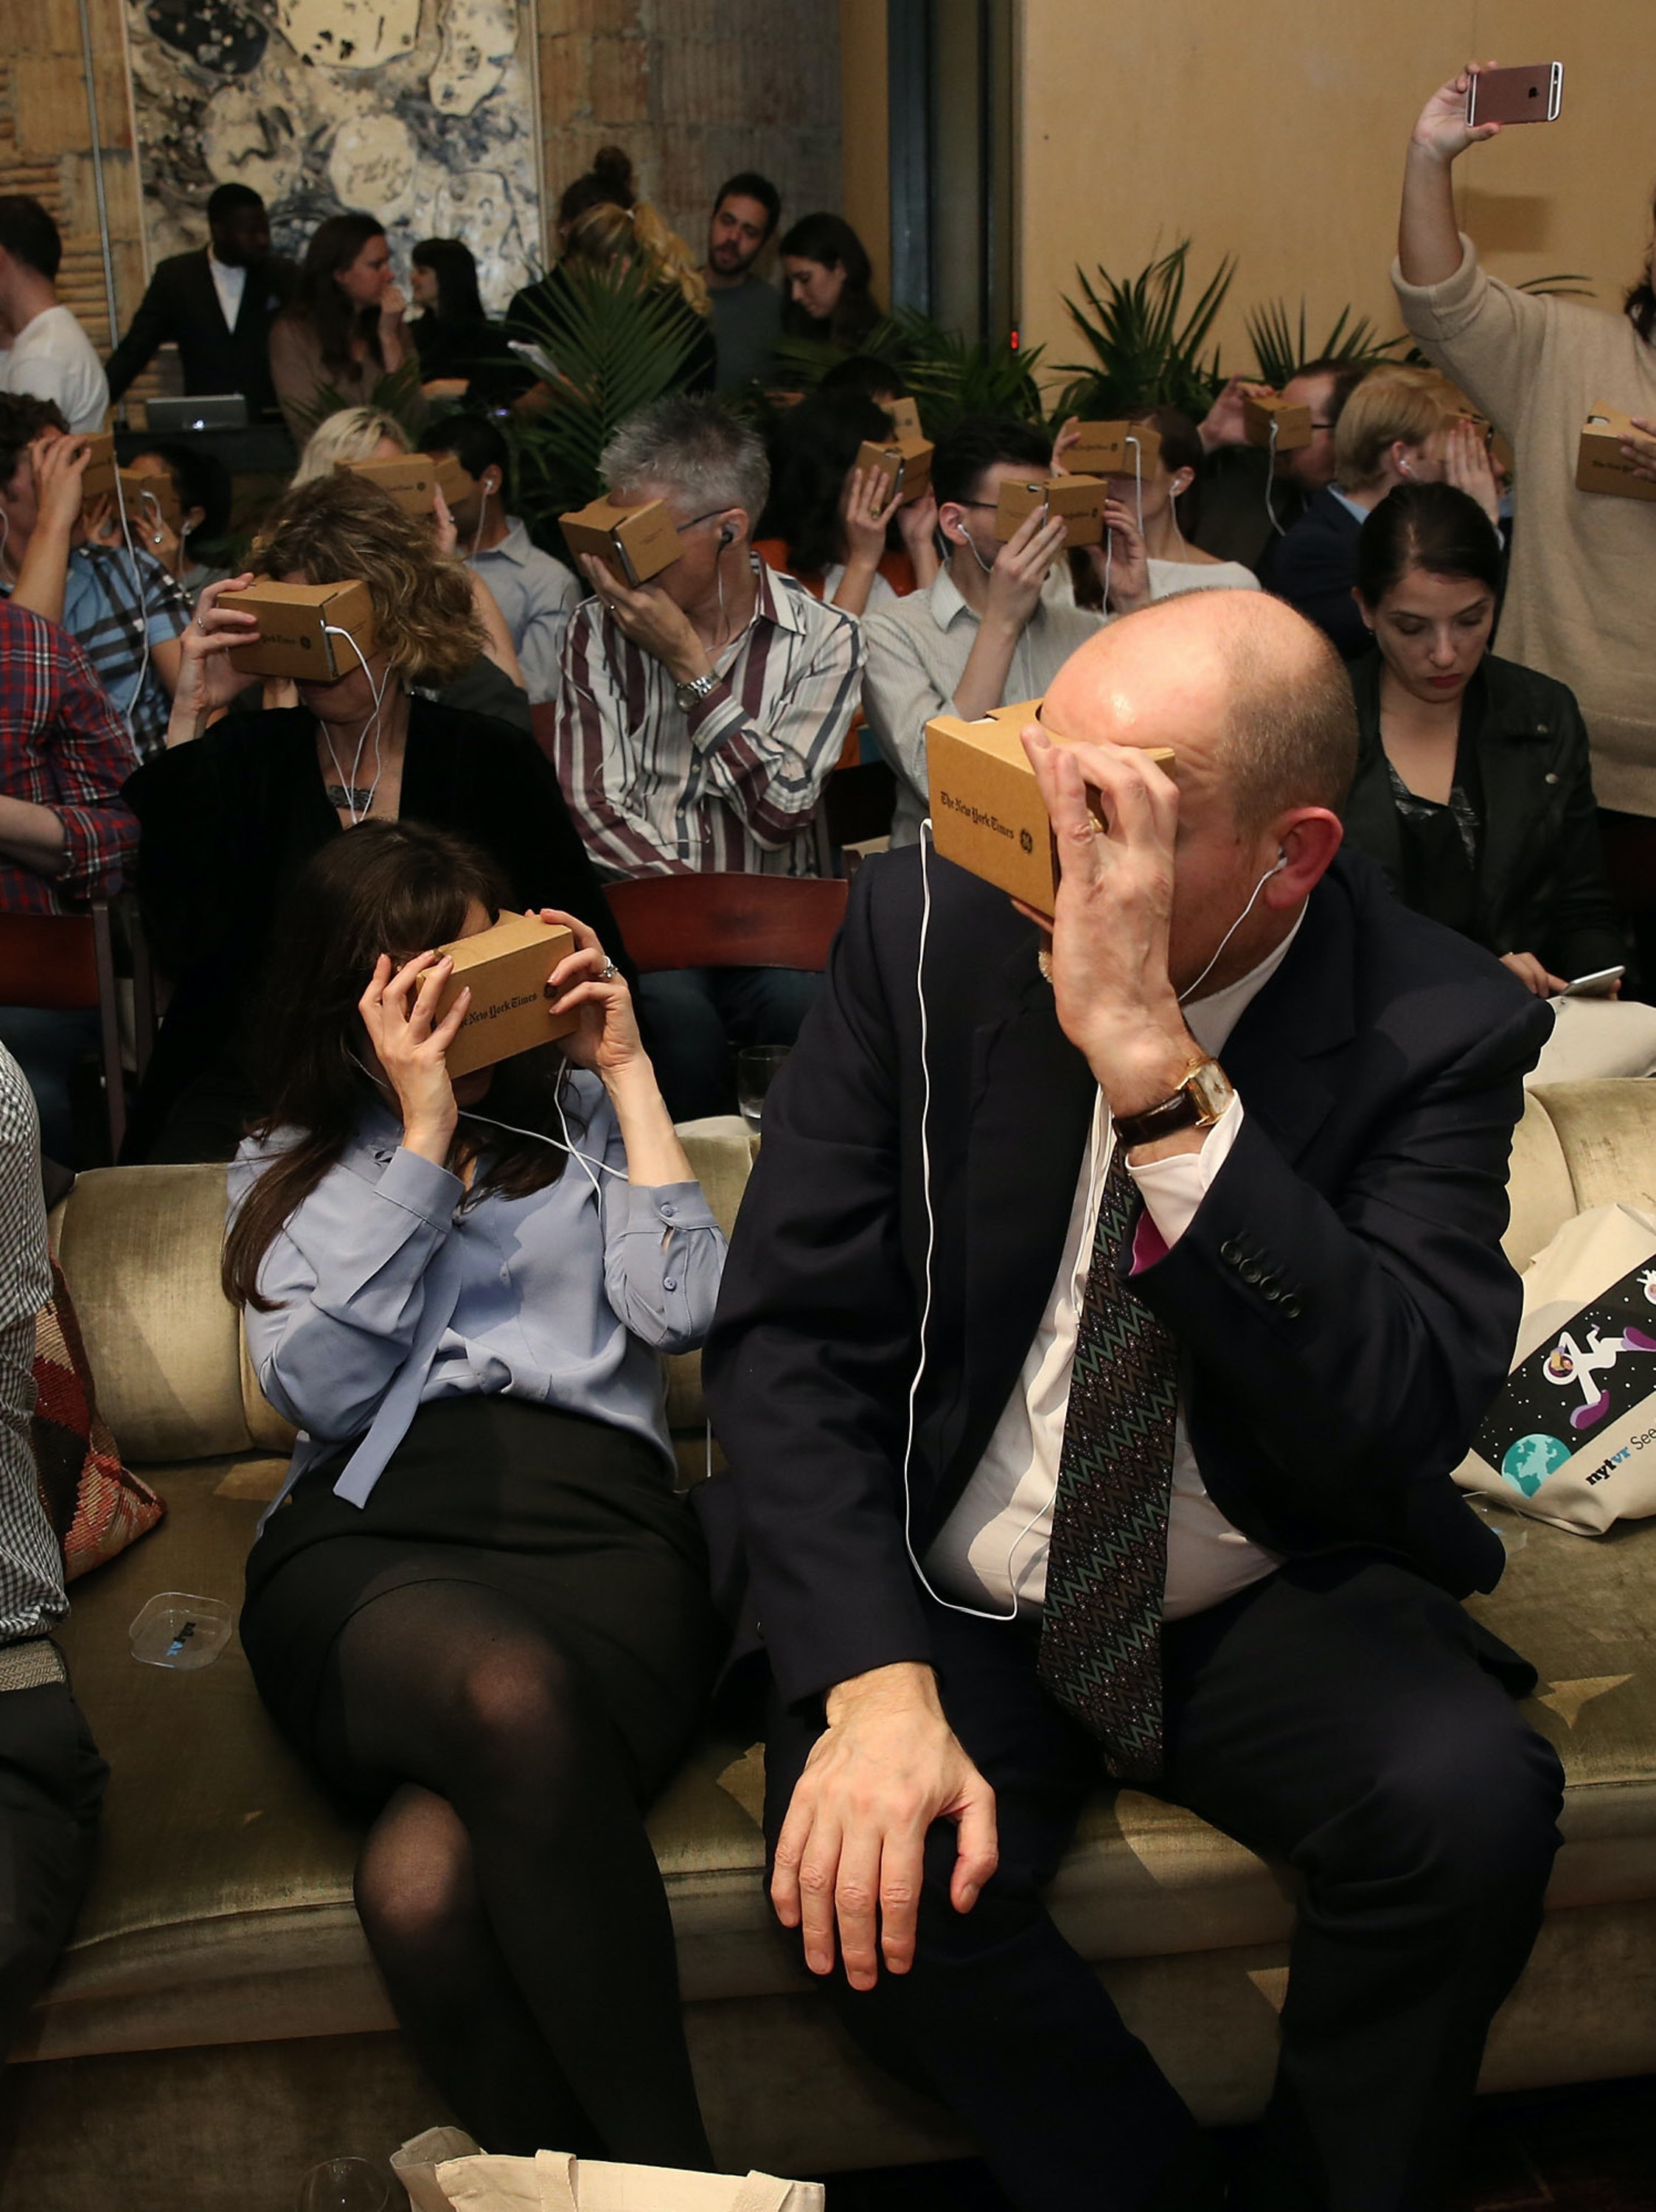 NEW YORK, NY - NOVEMBER 05:  (L-R) Head of Partnerships, Google Cardboard, Aaron Luber, The New York Times Company CRO, Meredith Kopiet Levien, CEO of the New York Times Company, Mark Thompson and Chris Milk attend The New York Times's NYTVR exclusive look event on November 5, 2015 in New York City.  (Photo by Neilson Barnard/Getty Images for New York Times)